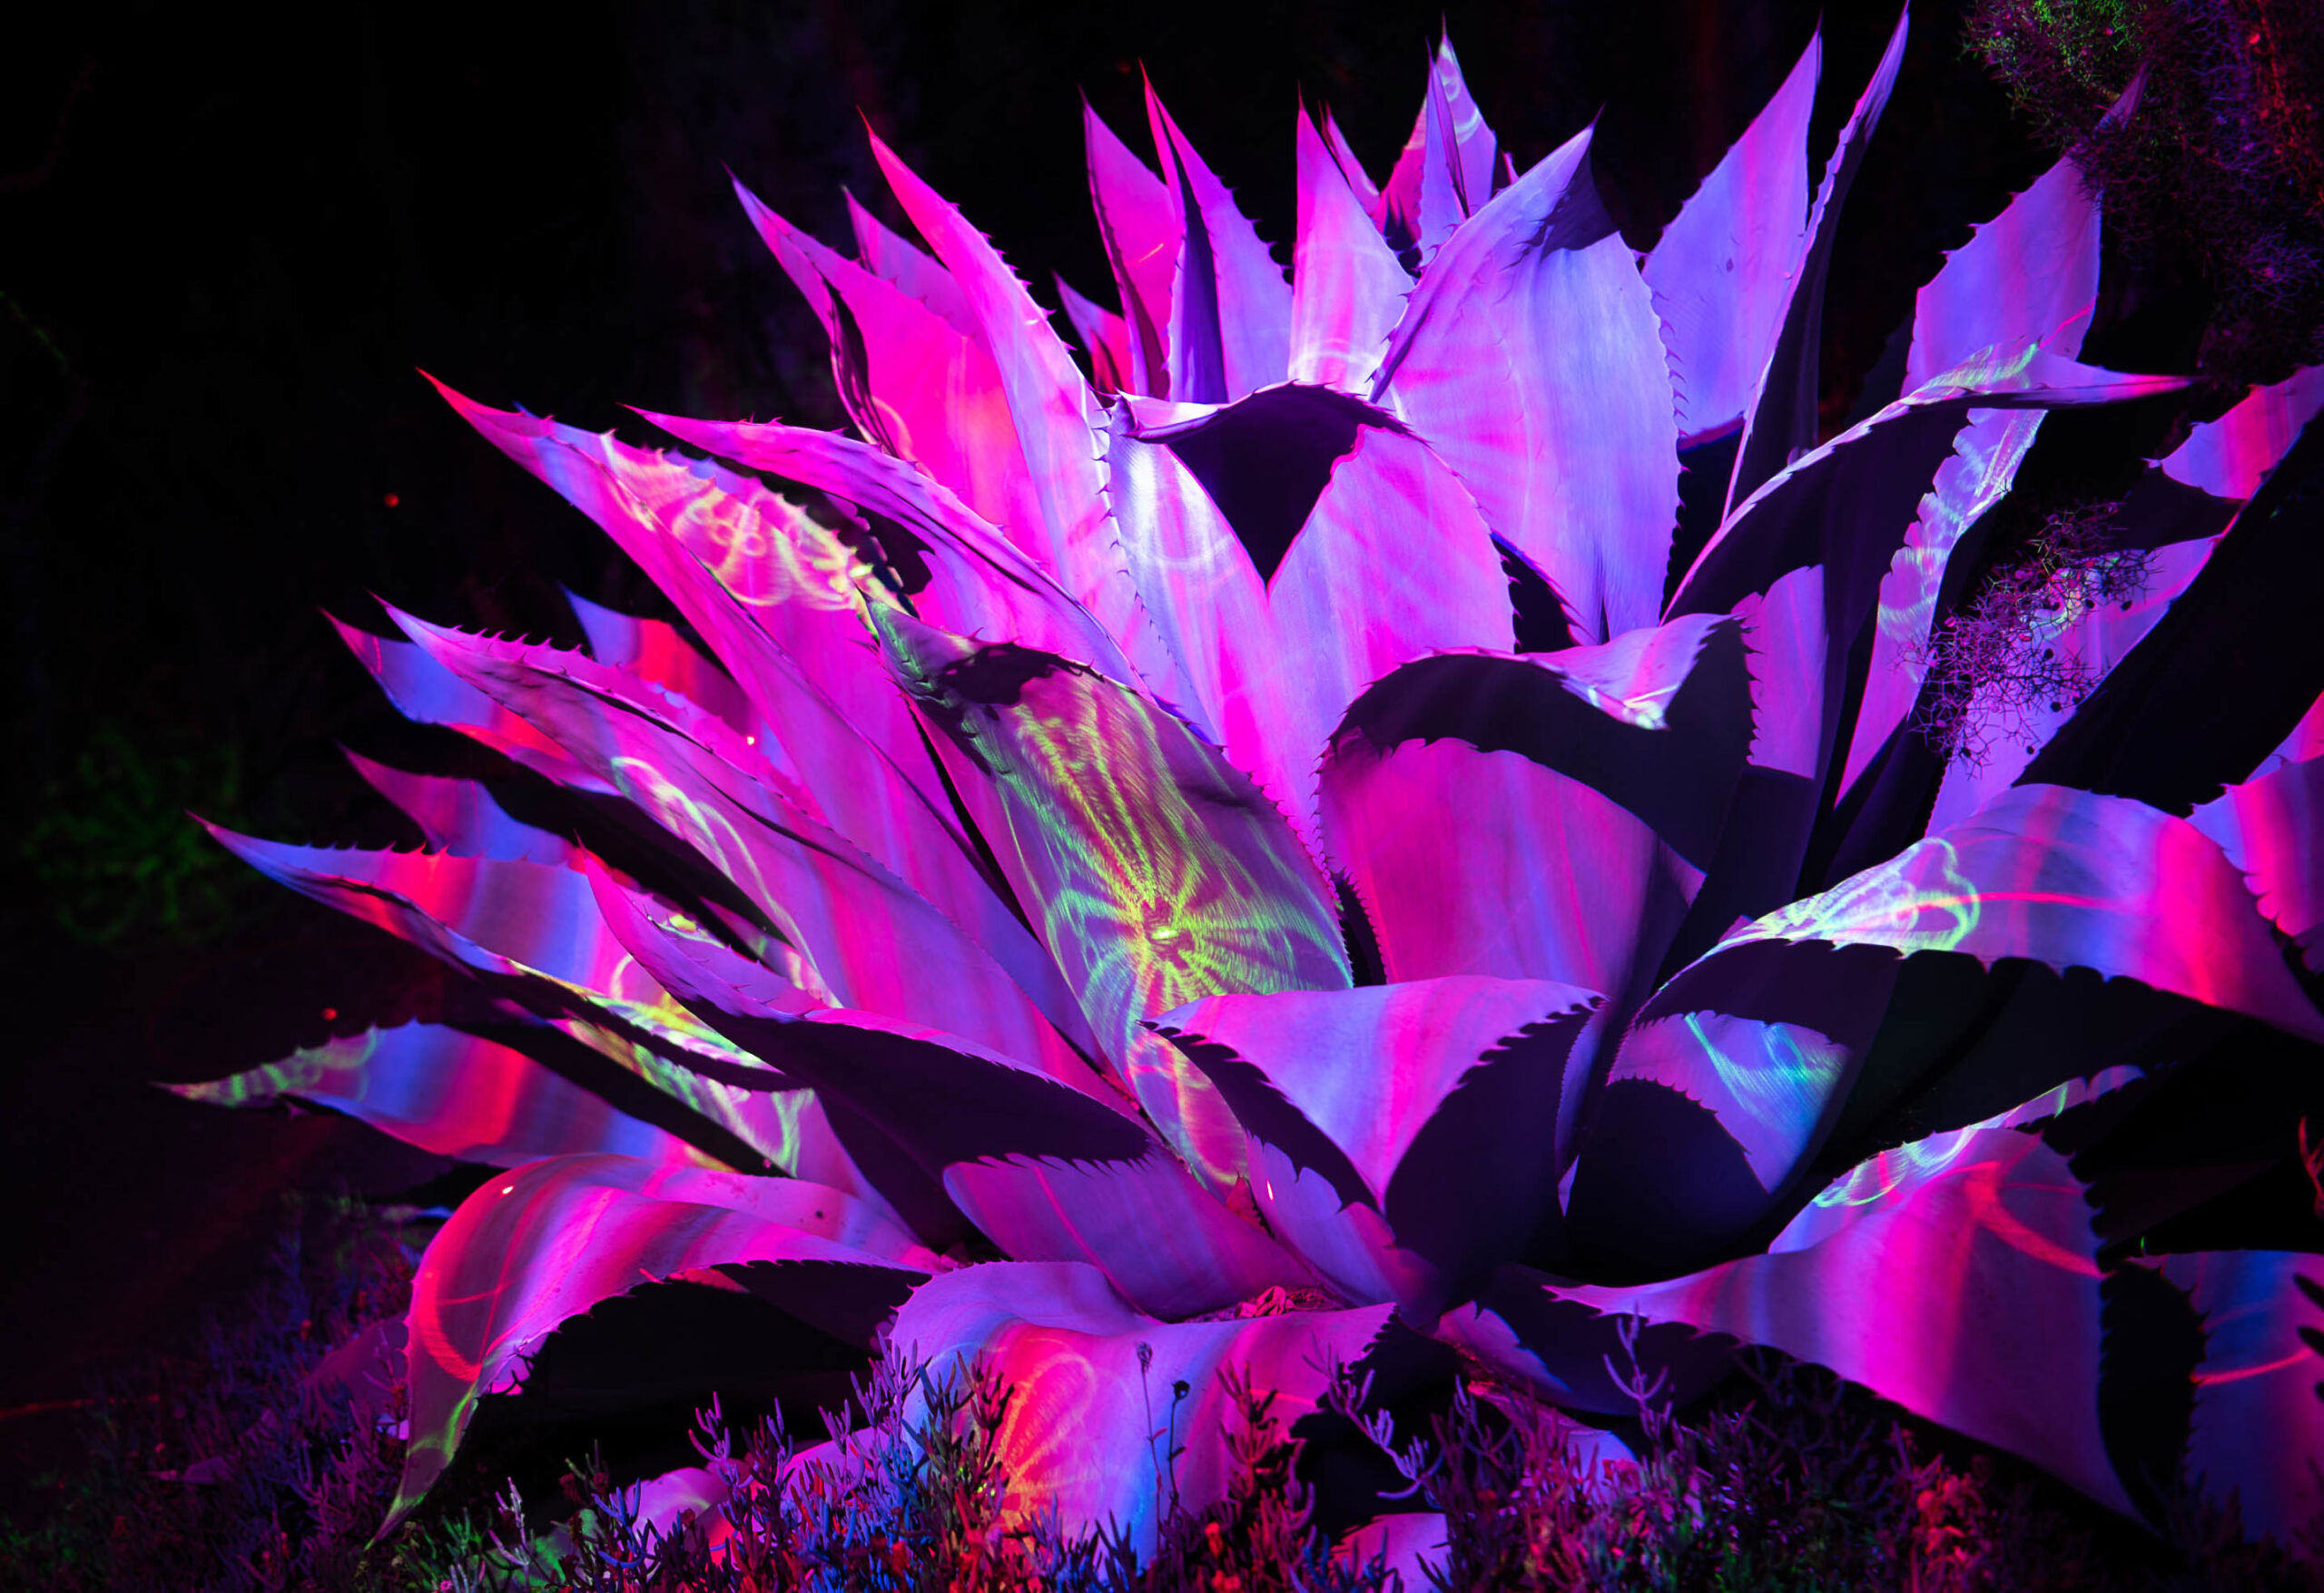 Brighten your holidays at the Garden of d'Lights